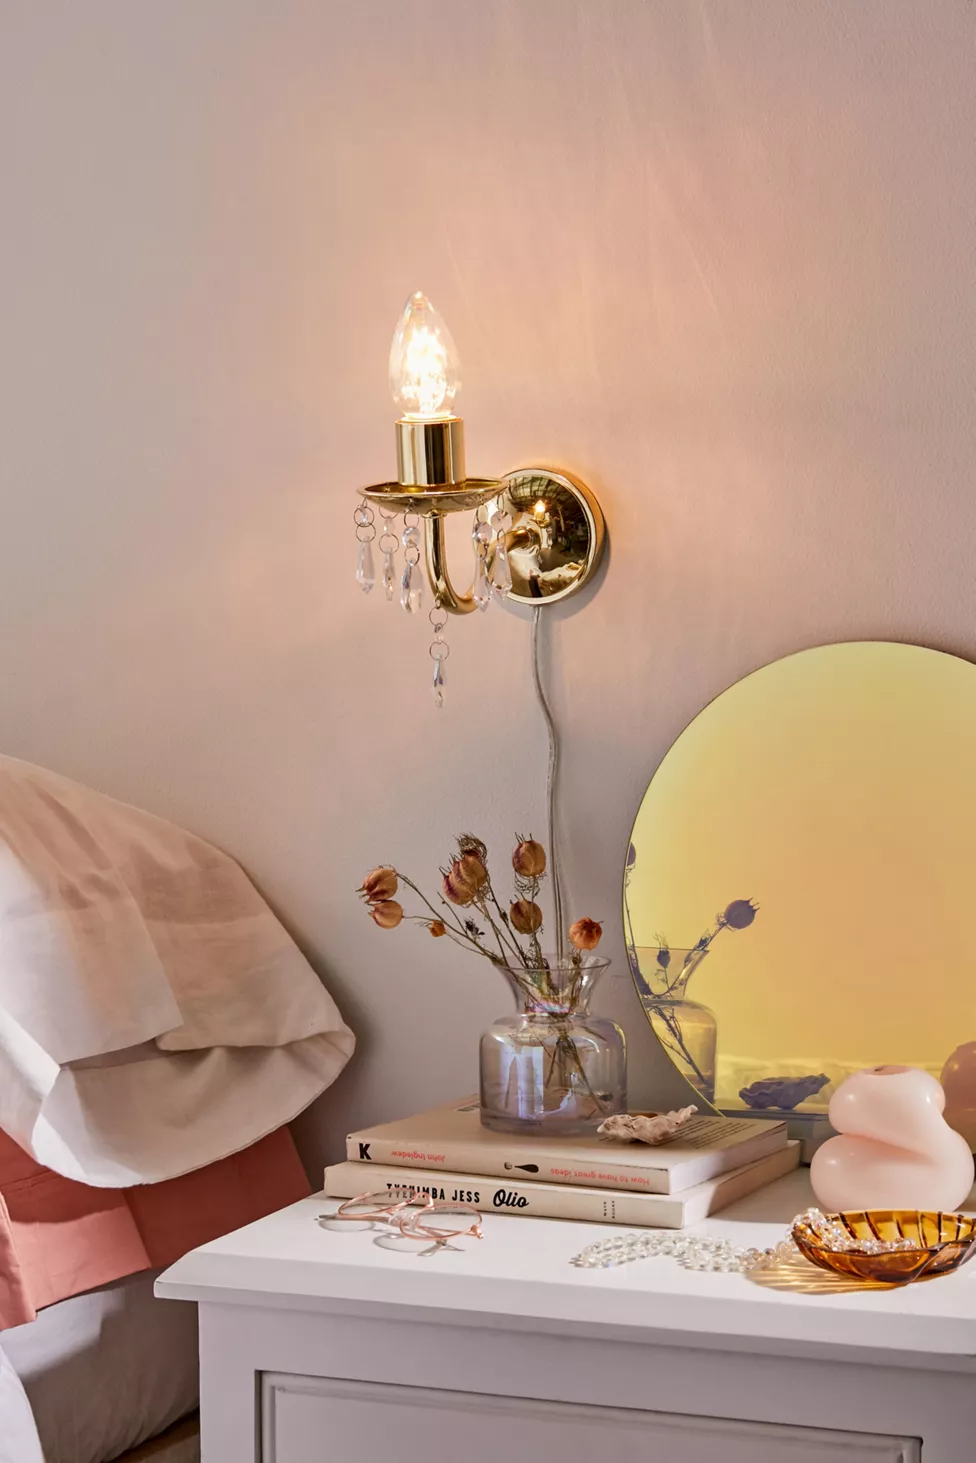 Beatrice Sconce in 2020 | Aesthetic room decor, Home, Home decor